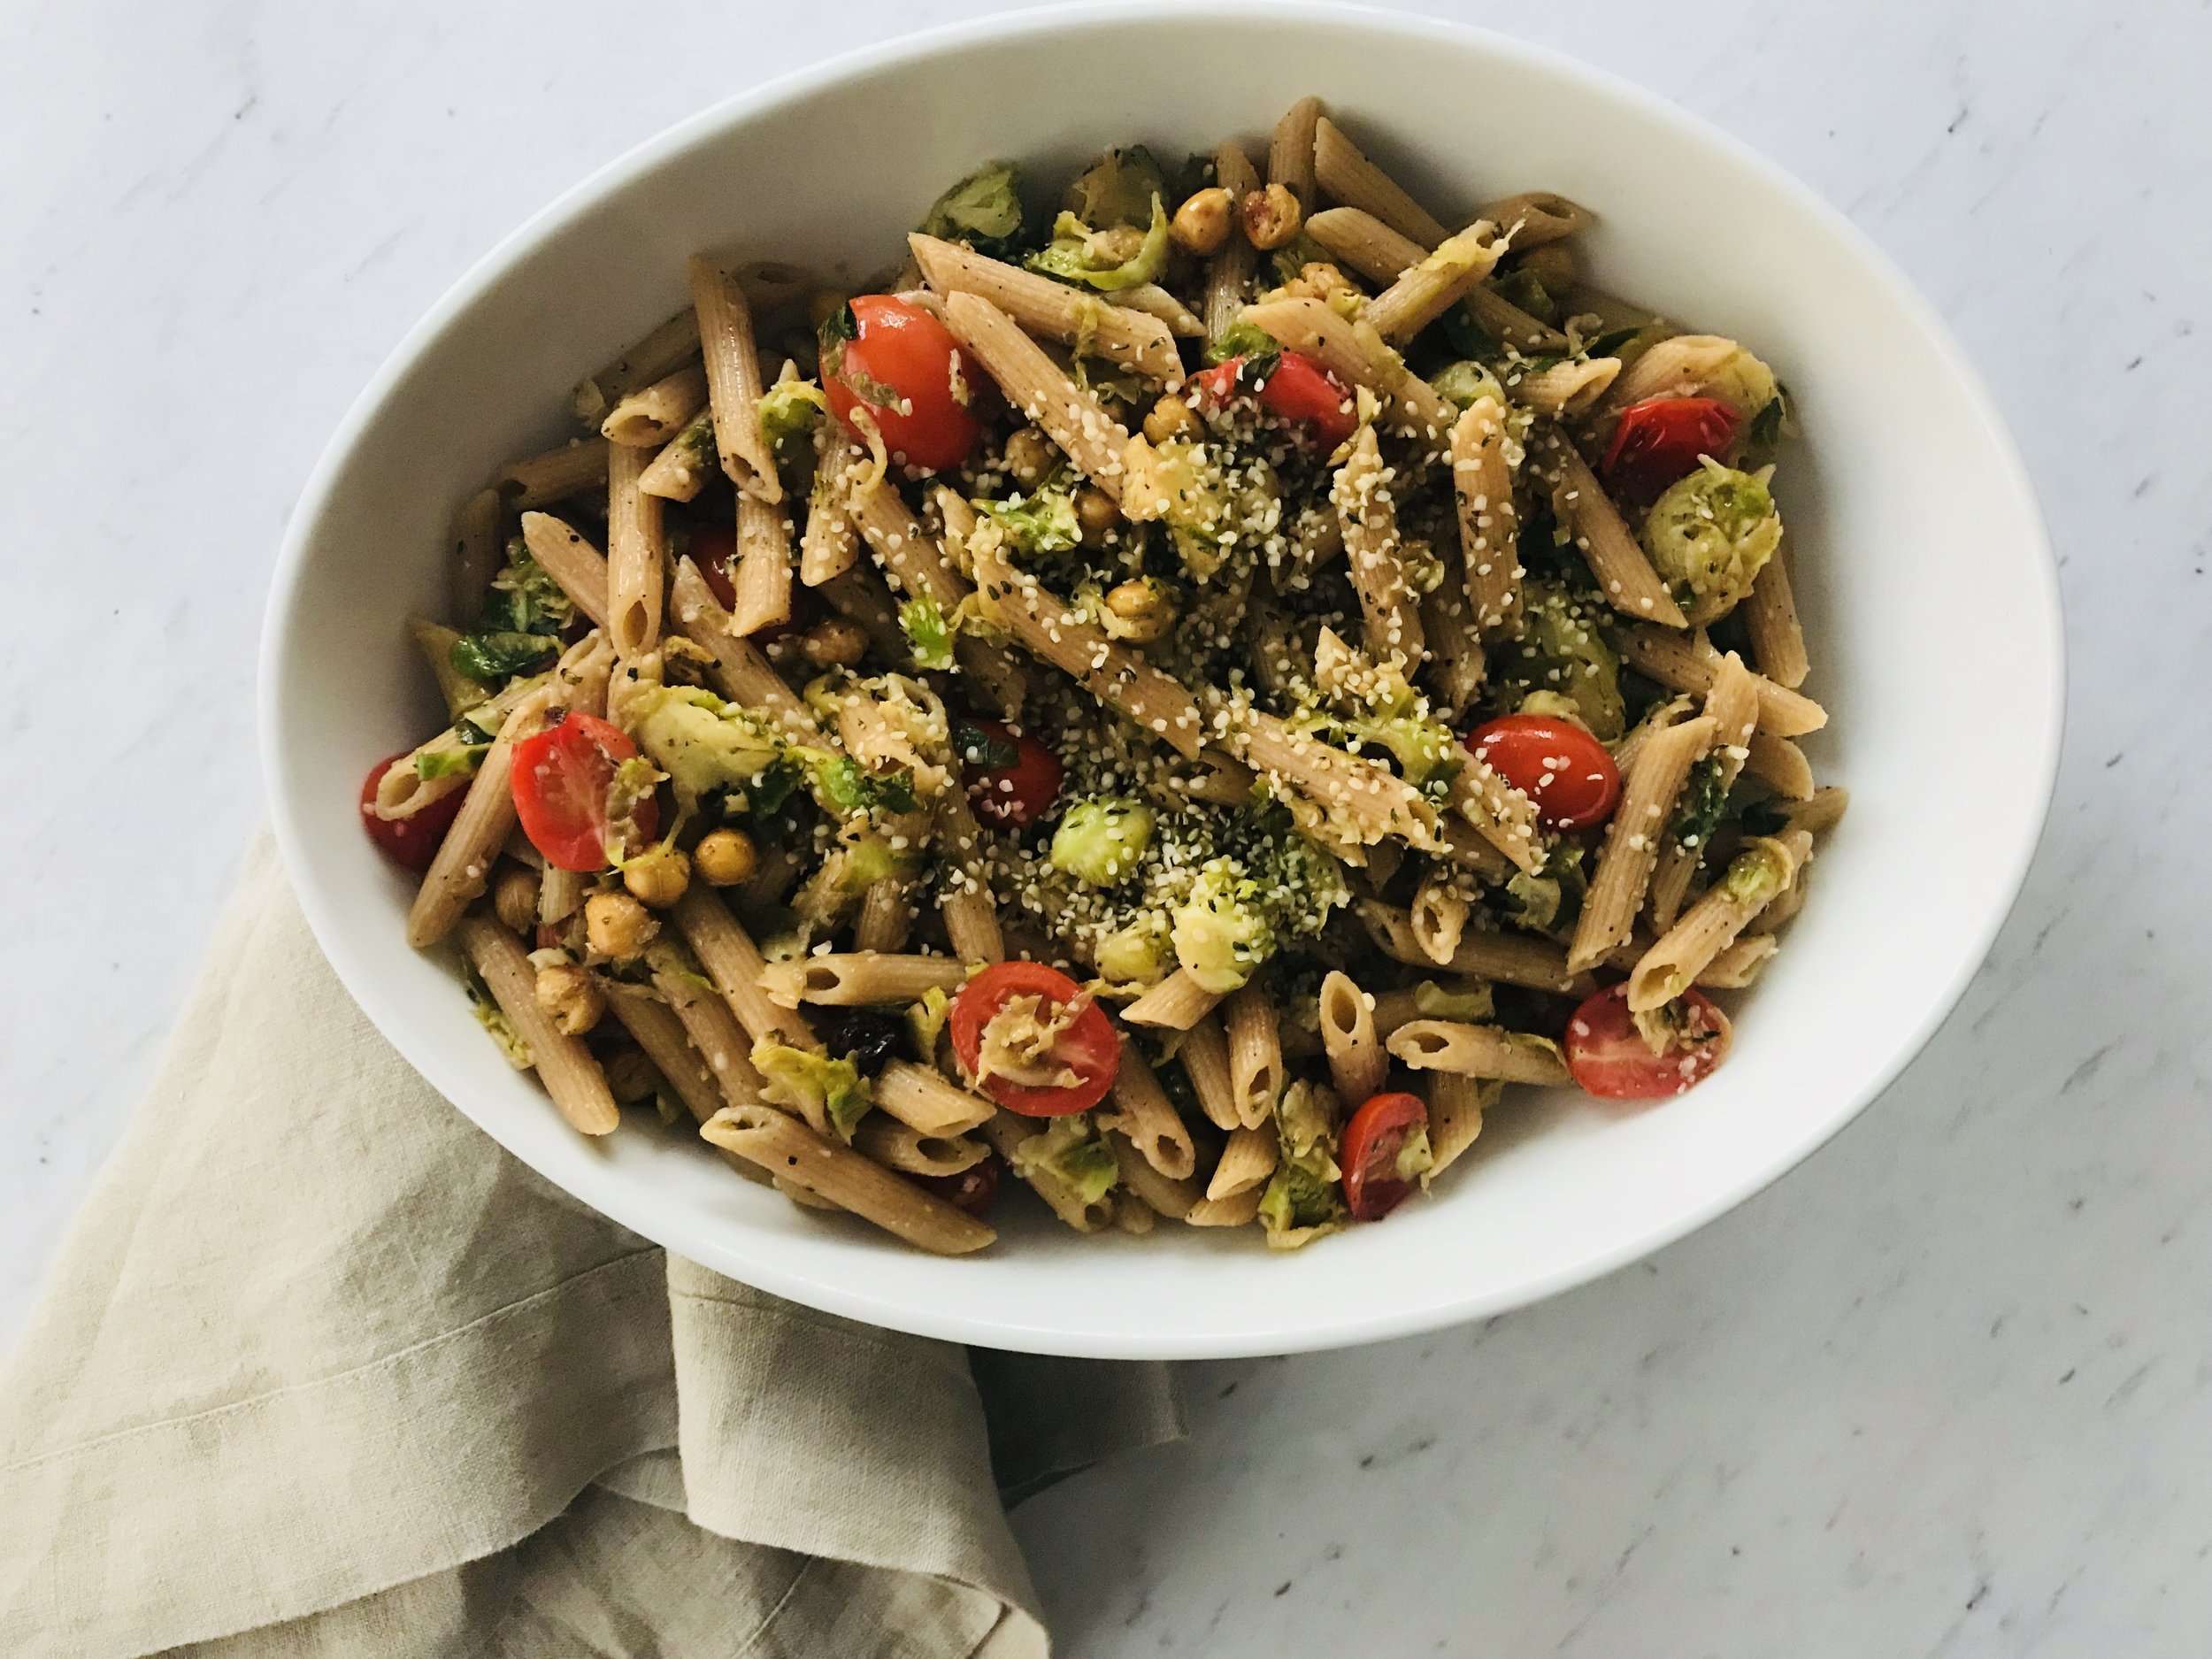 Pasta with Brussel Sprouts, Crunchy Chickpeas & Hemp Seeds